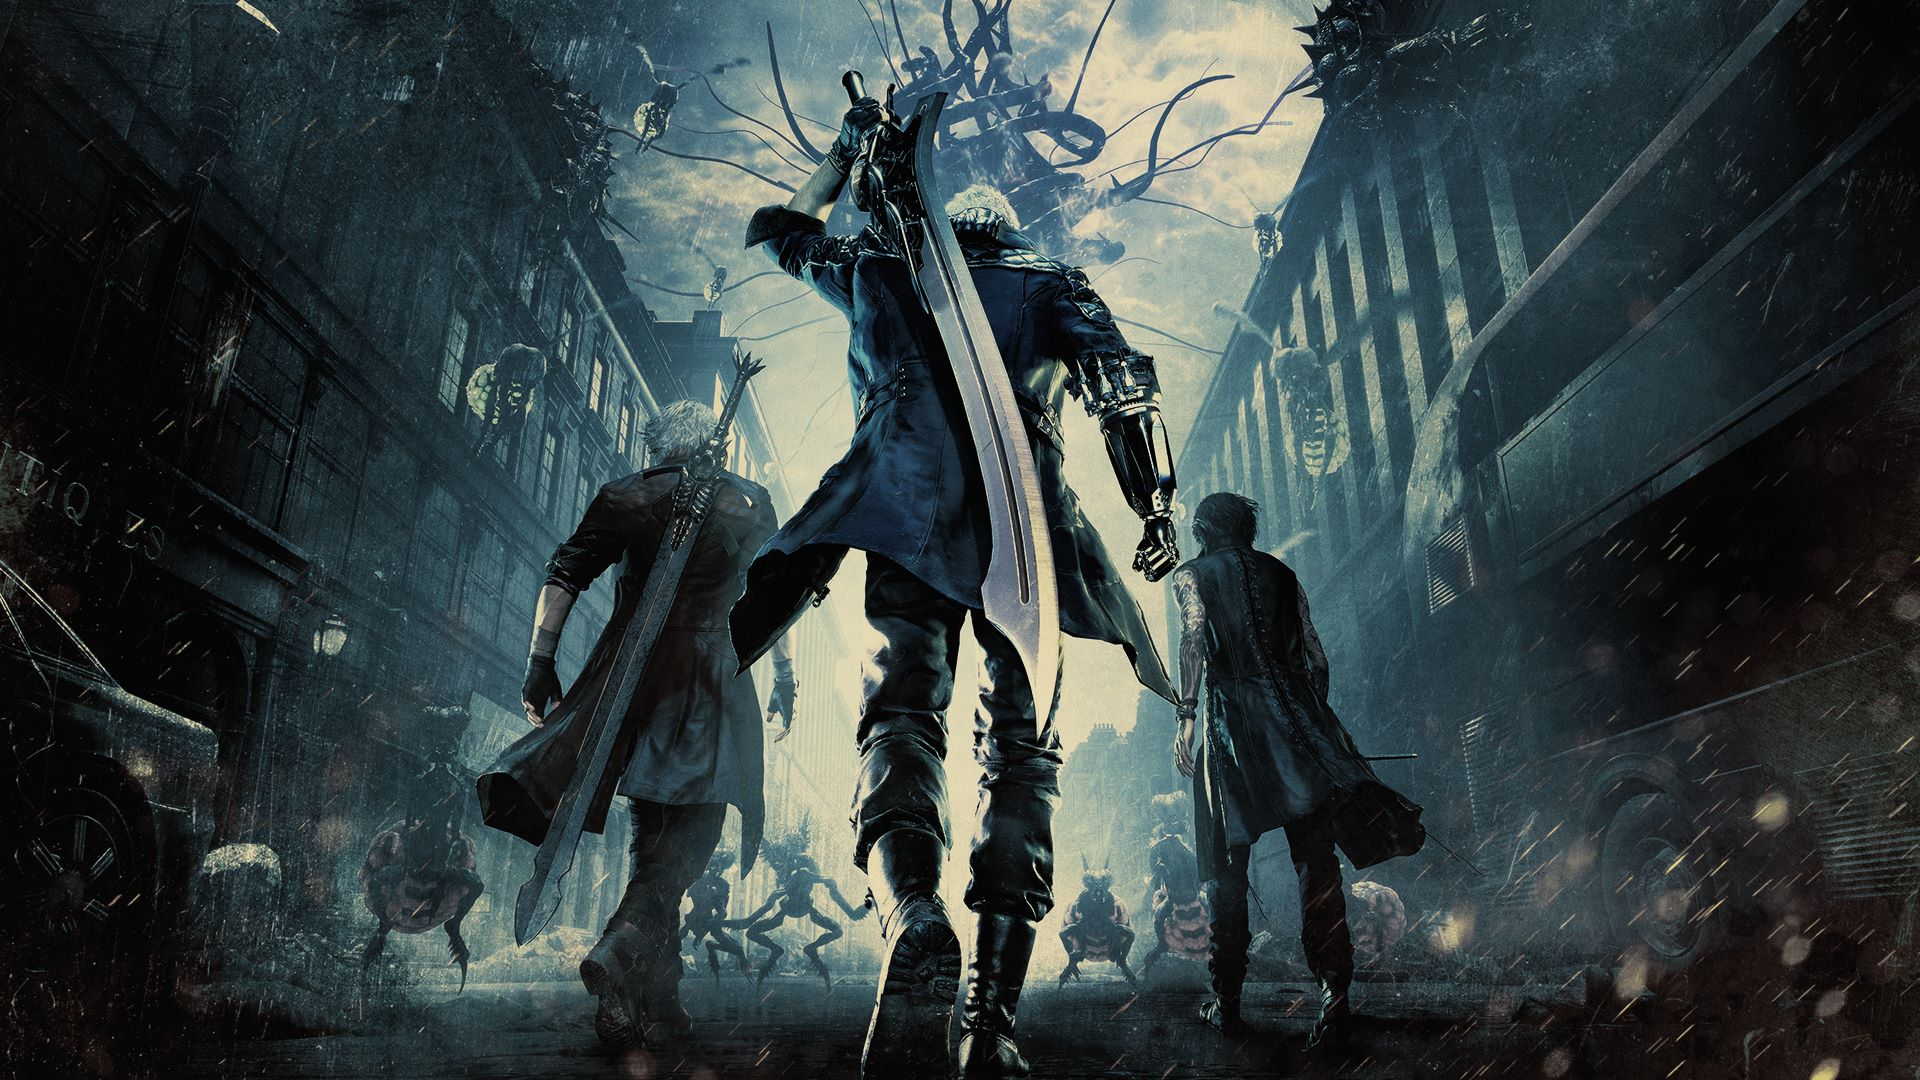 Demo Exclusiva para Xbox de Devil May Cry 5